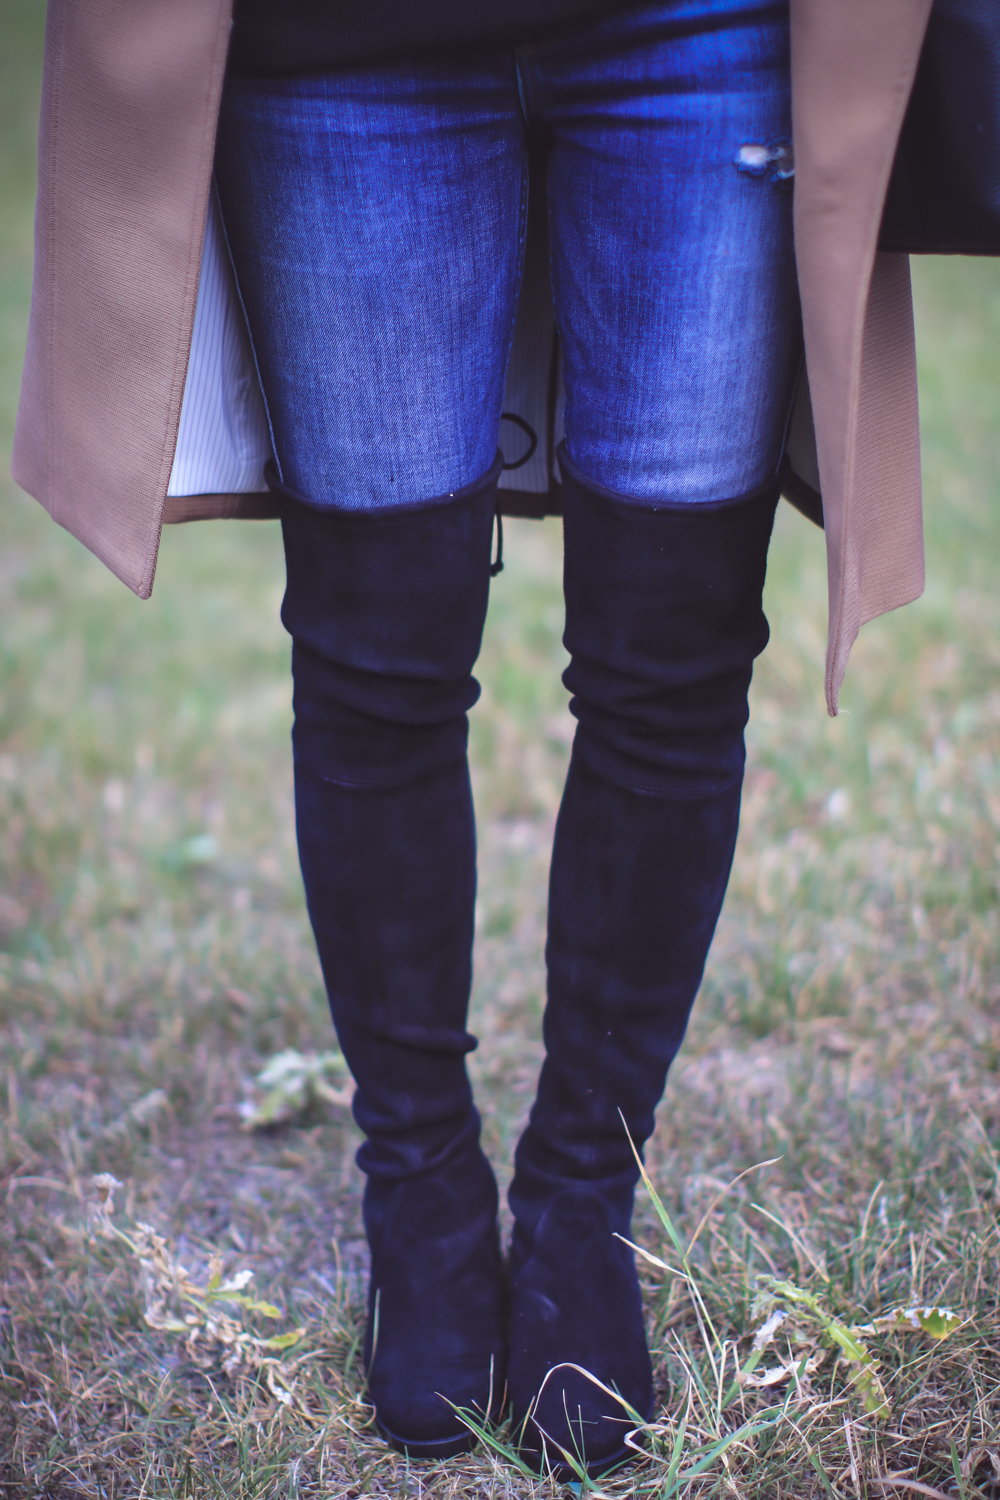 Trench Coat Styled 5 Ways | Fashion Over 40 | Busbee Style, cashmere sweater, denim jeans, and tall boots